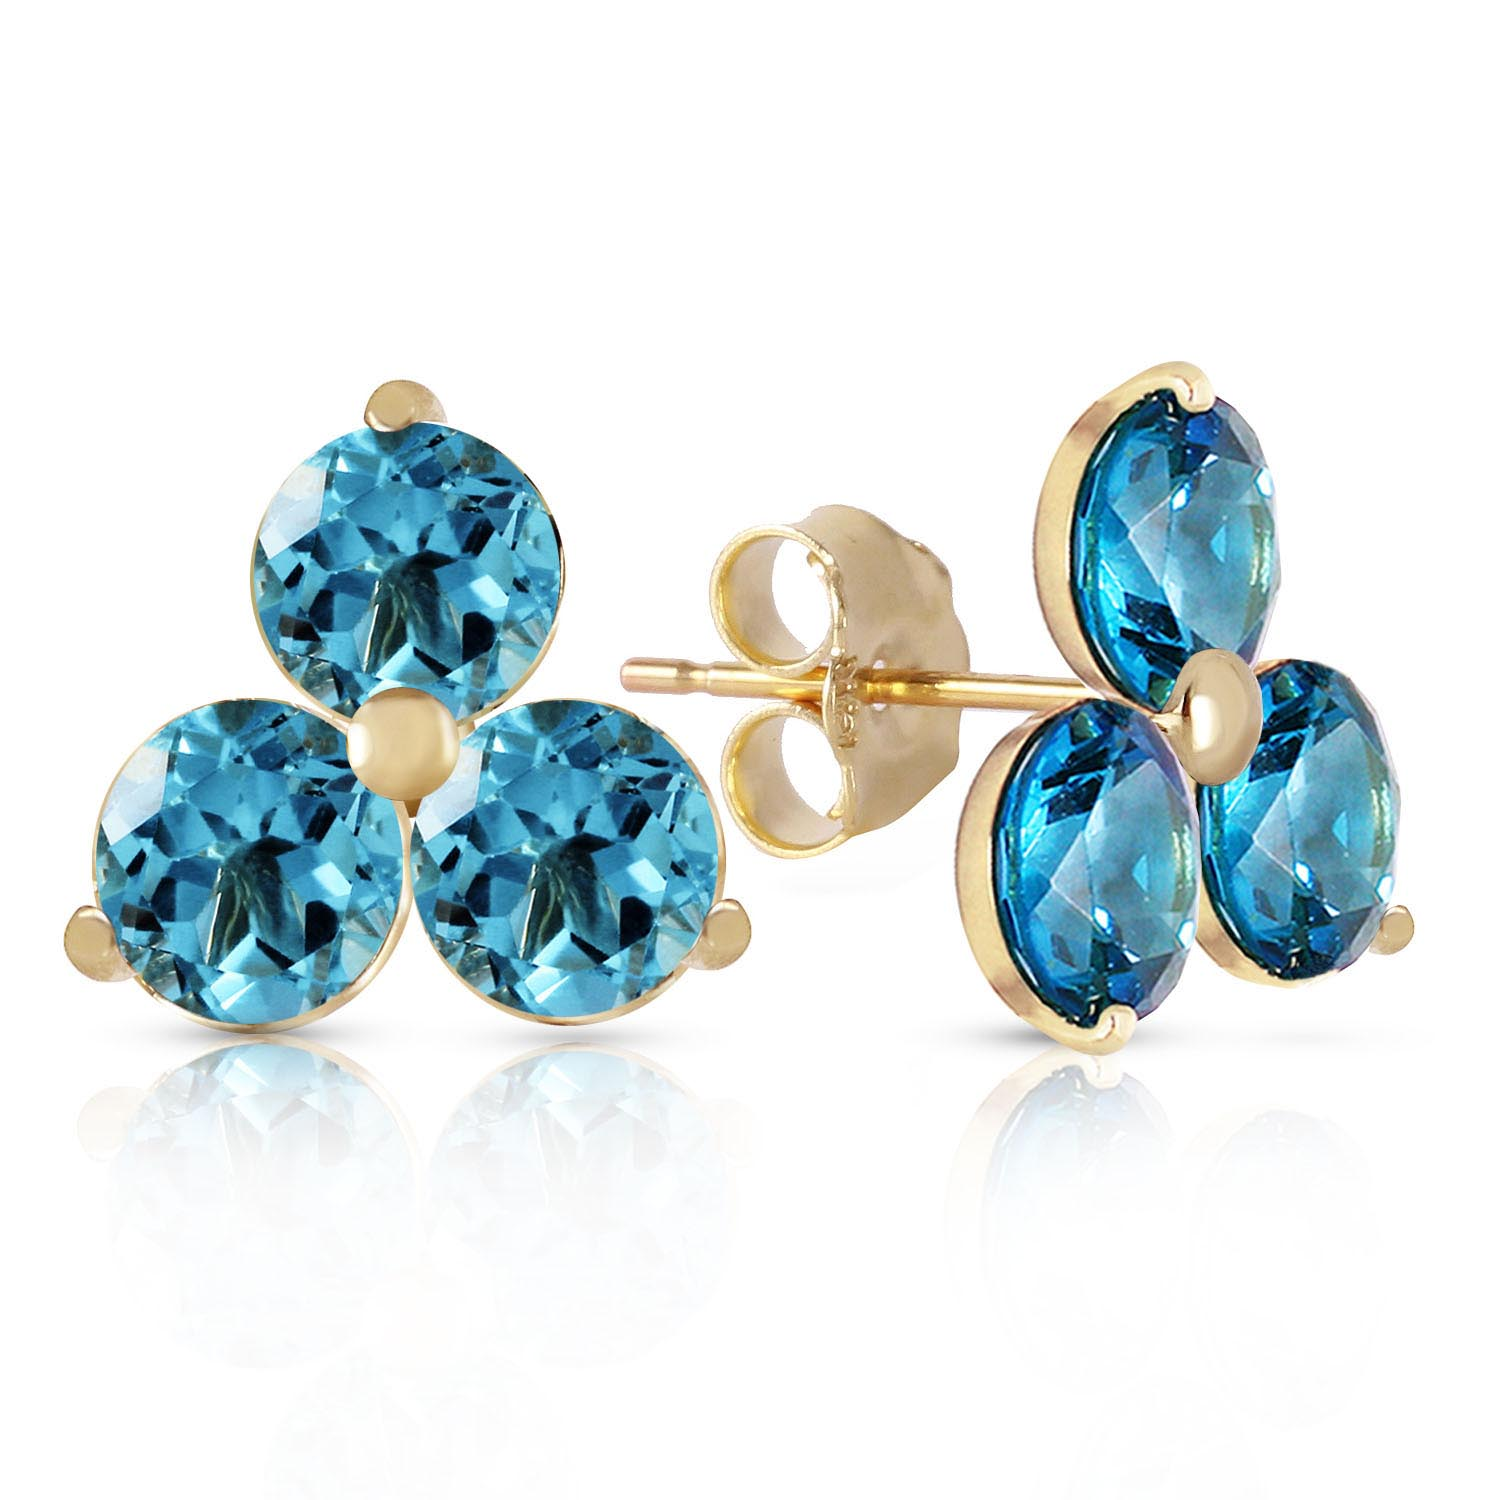 Blue Topaz Trinity Stud Earrings 1.5 ctw in 9ct Gold